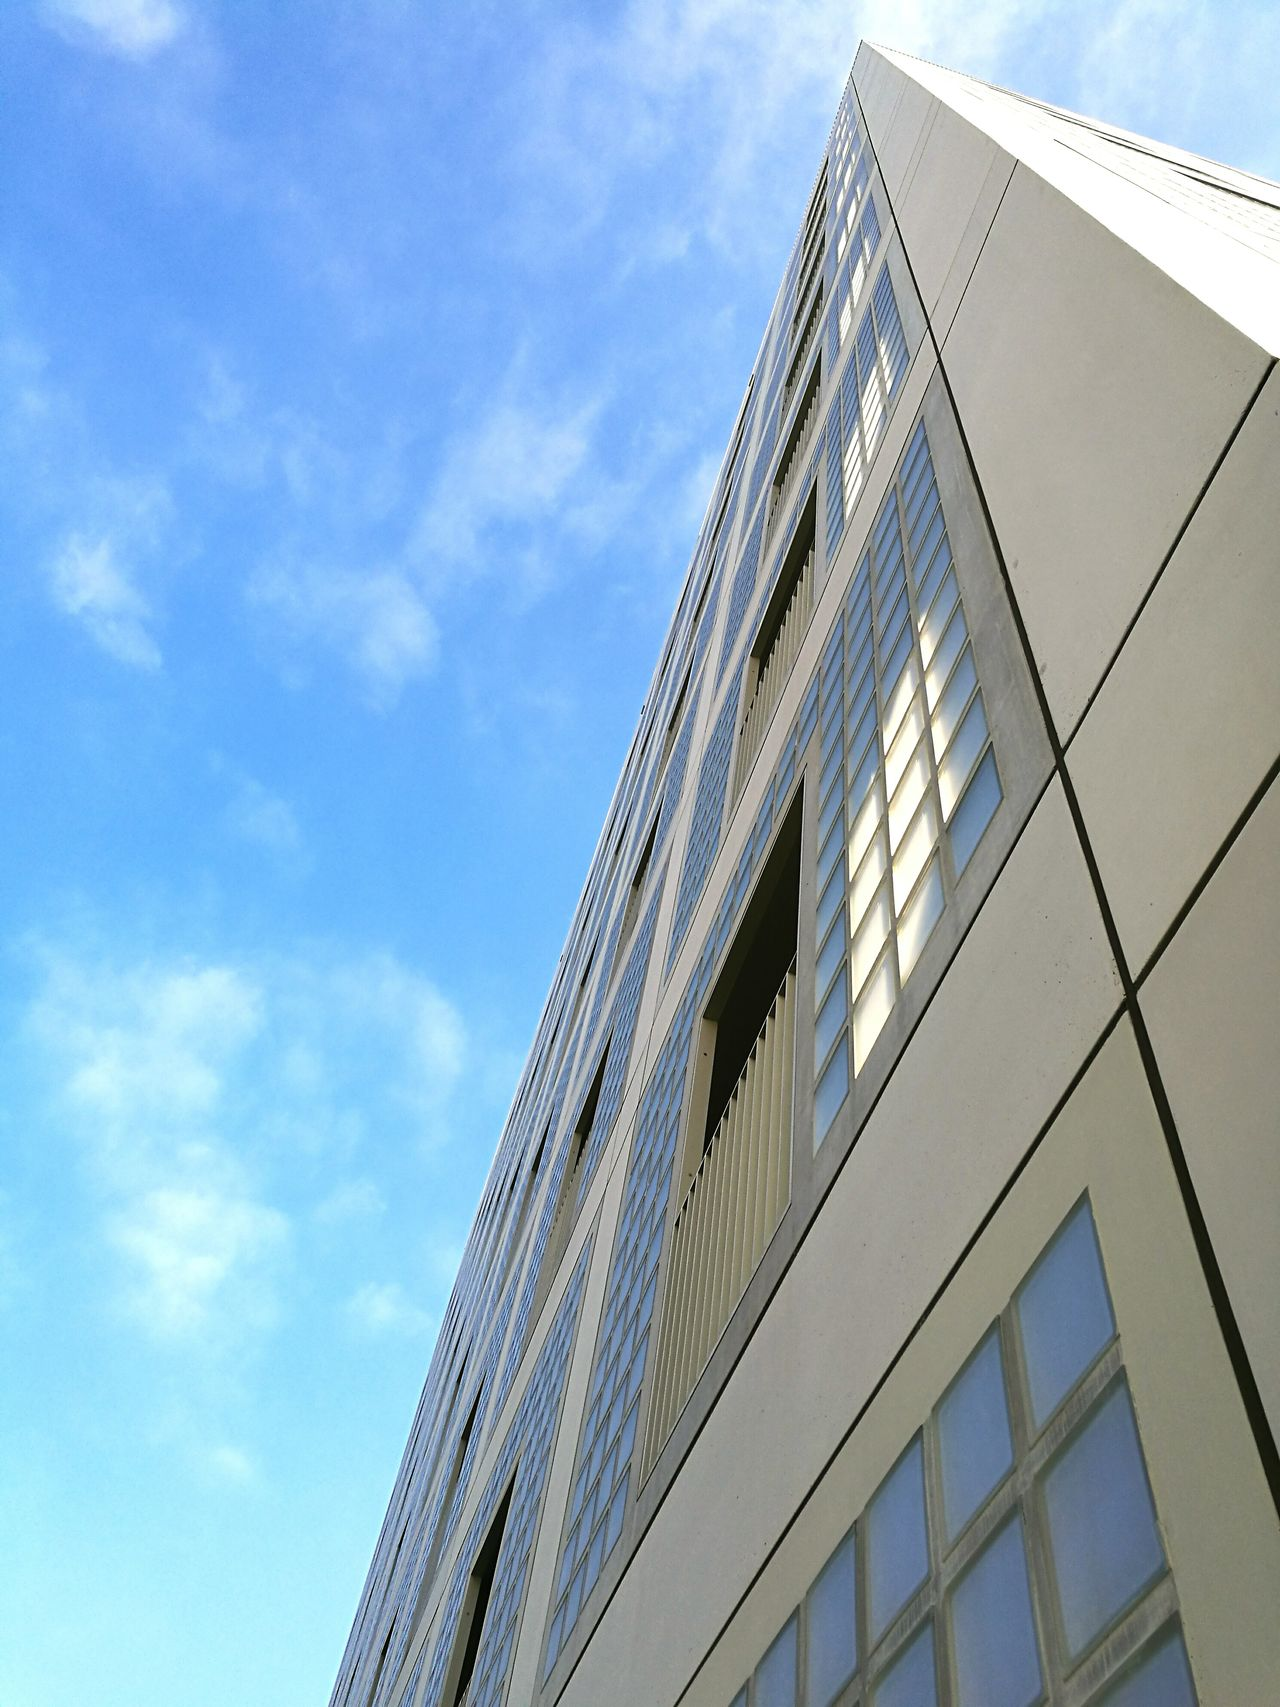 Low Angle View Architecture Sky Built Structure Building Exterior Modern Skyscraper Outdoors Day No People Cloud - Sky Architecture Cityofstuttgart Library Building Cultural Center Stuttgartmobilephotographers 0711 HuaweiP9 Minimalist Architecture The Secret Spaces Break The Mold Art Is Everywhere The Architect - 2017 EyeEm Awards Neighborhood Map